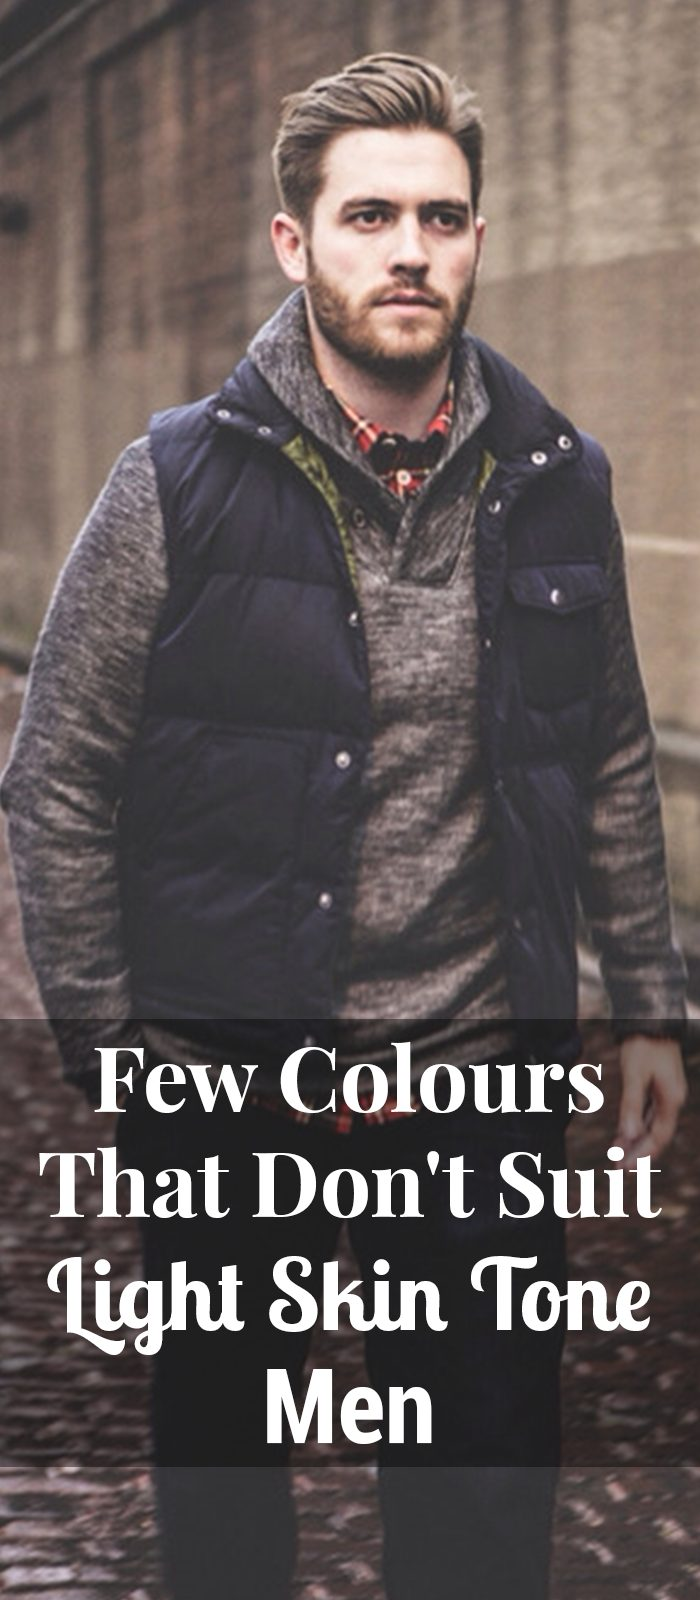 Few Colours That Don't Suit Light Skin Tone Men